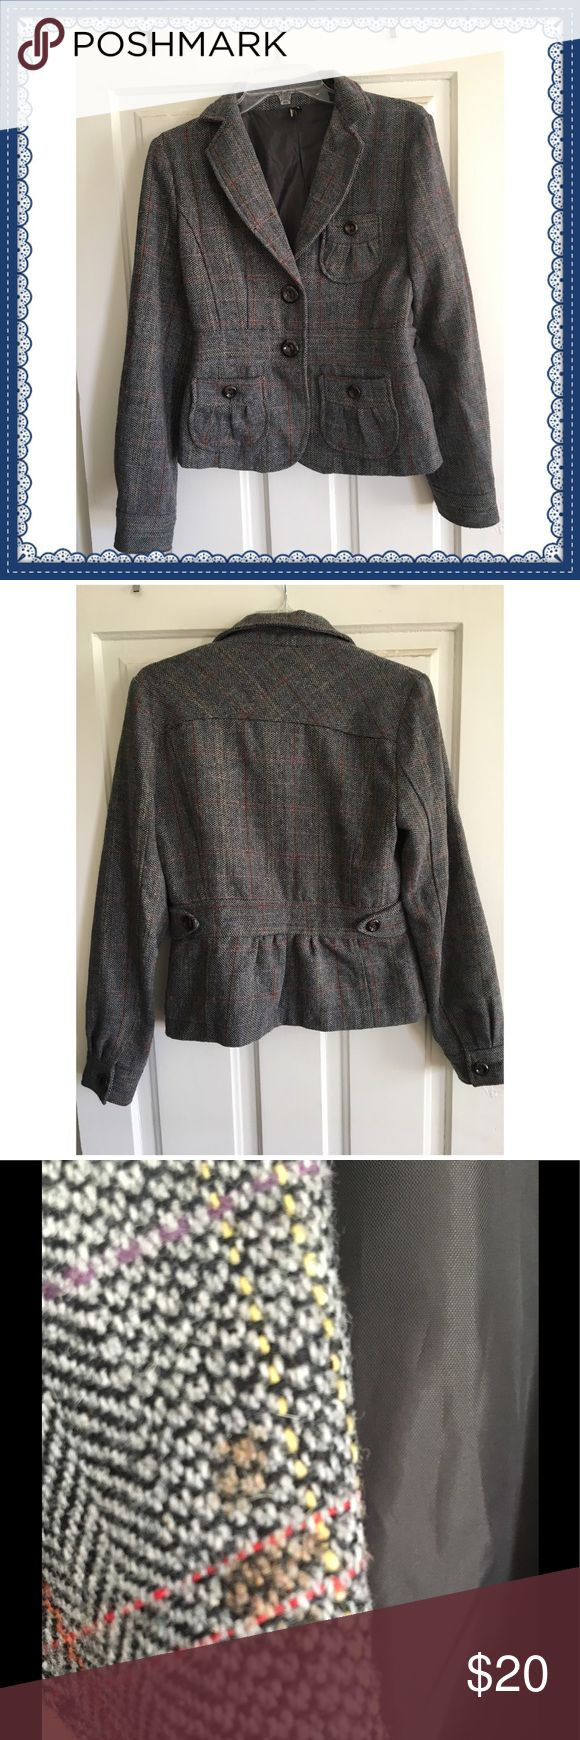 🍁🍁Gray Tweed Blazer🍁🍁 Fantastic gray tweed blazer, perfect for fall 🍁🍂🍁 Good condition-- three stains which are pictured, but would likely come out with dry cleaning!!! Otherwise great condition so snap this up for your autumn adventures 🍎🍄🎈Bought at Nordstrom! Nordstrom Jackets & Coats Blazers